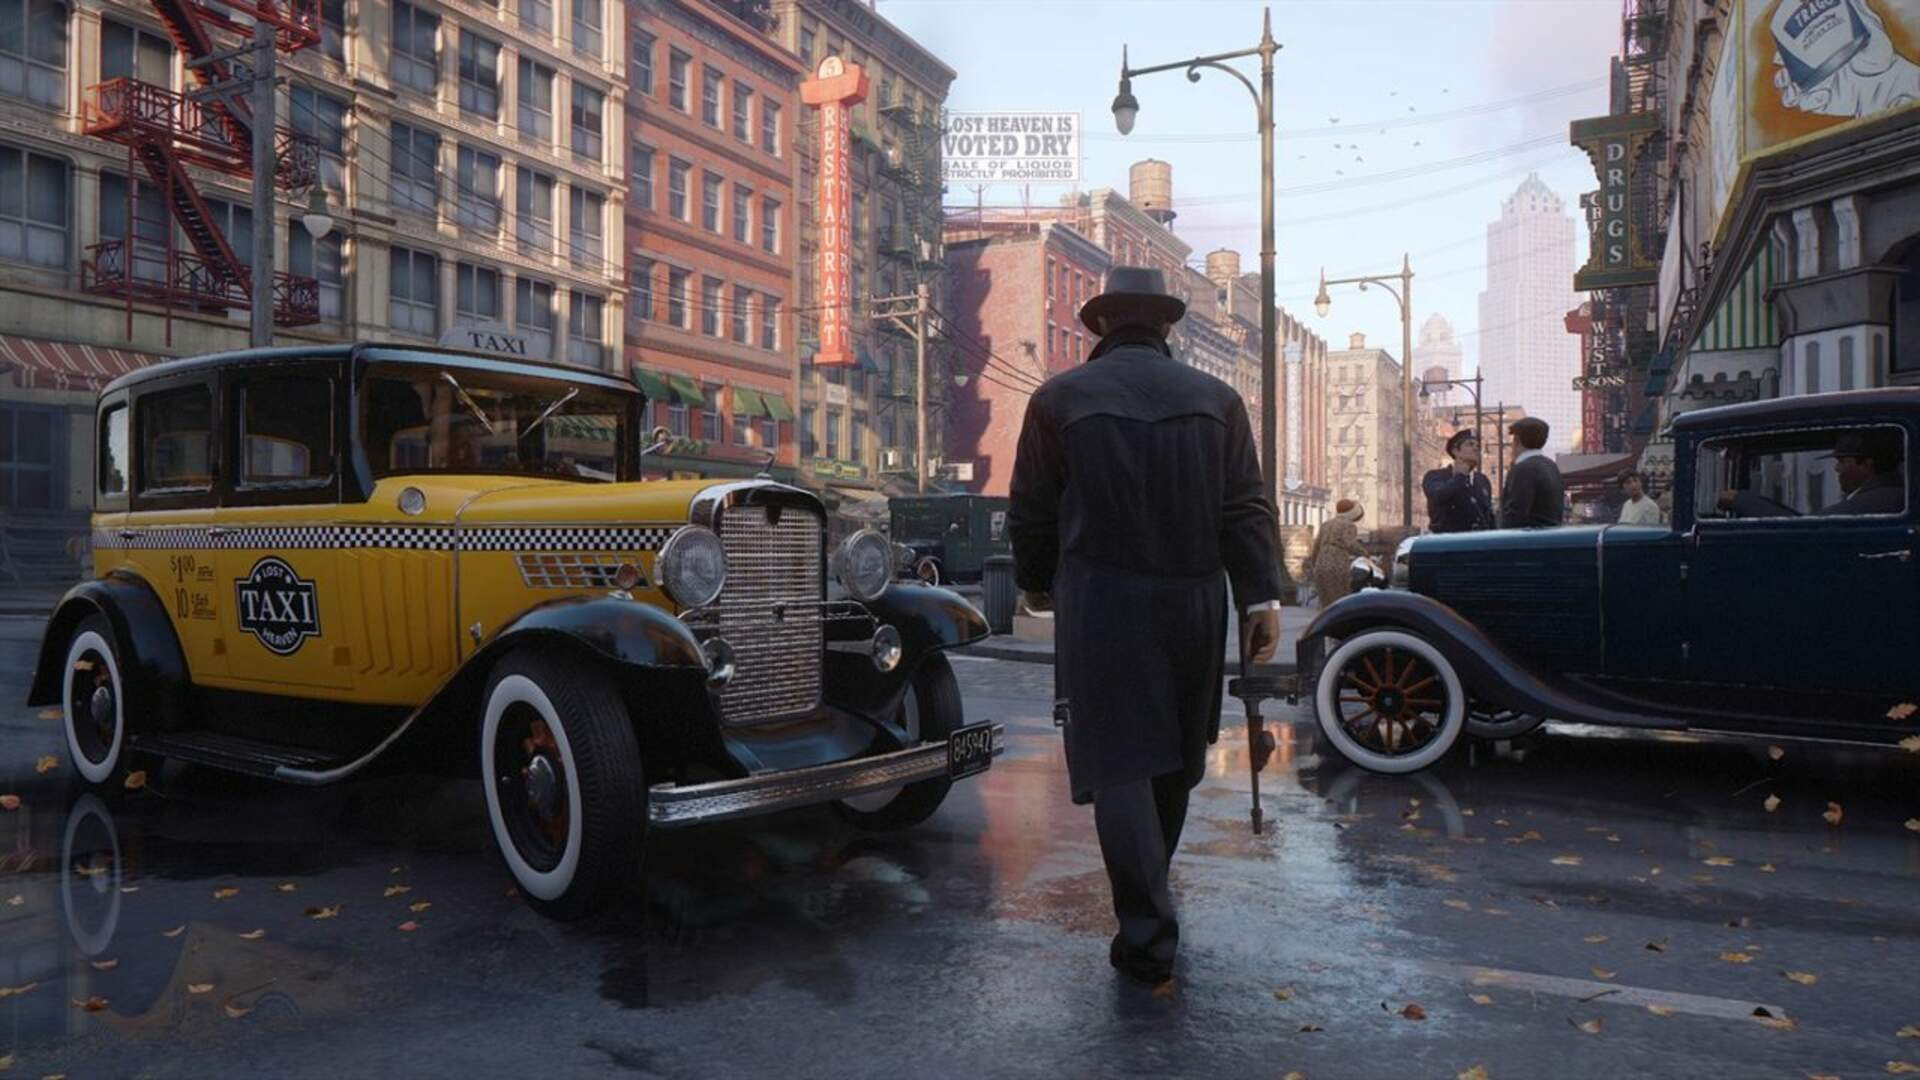 Mafia: Definitive Edition Screenshots Reveal a Stunning Remake